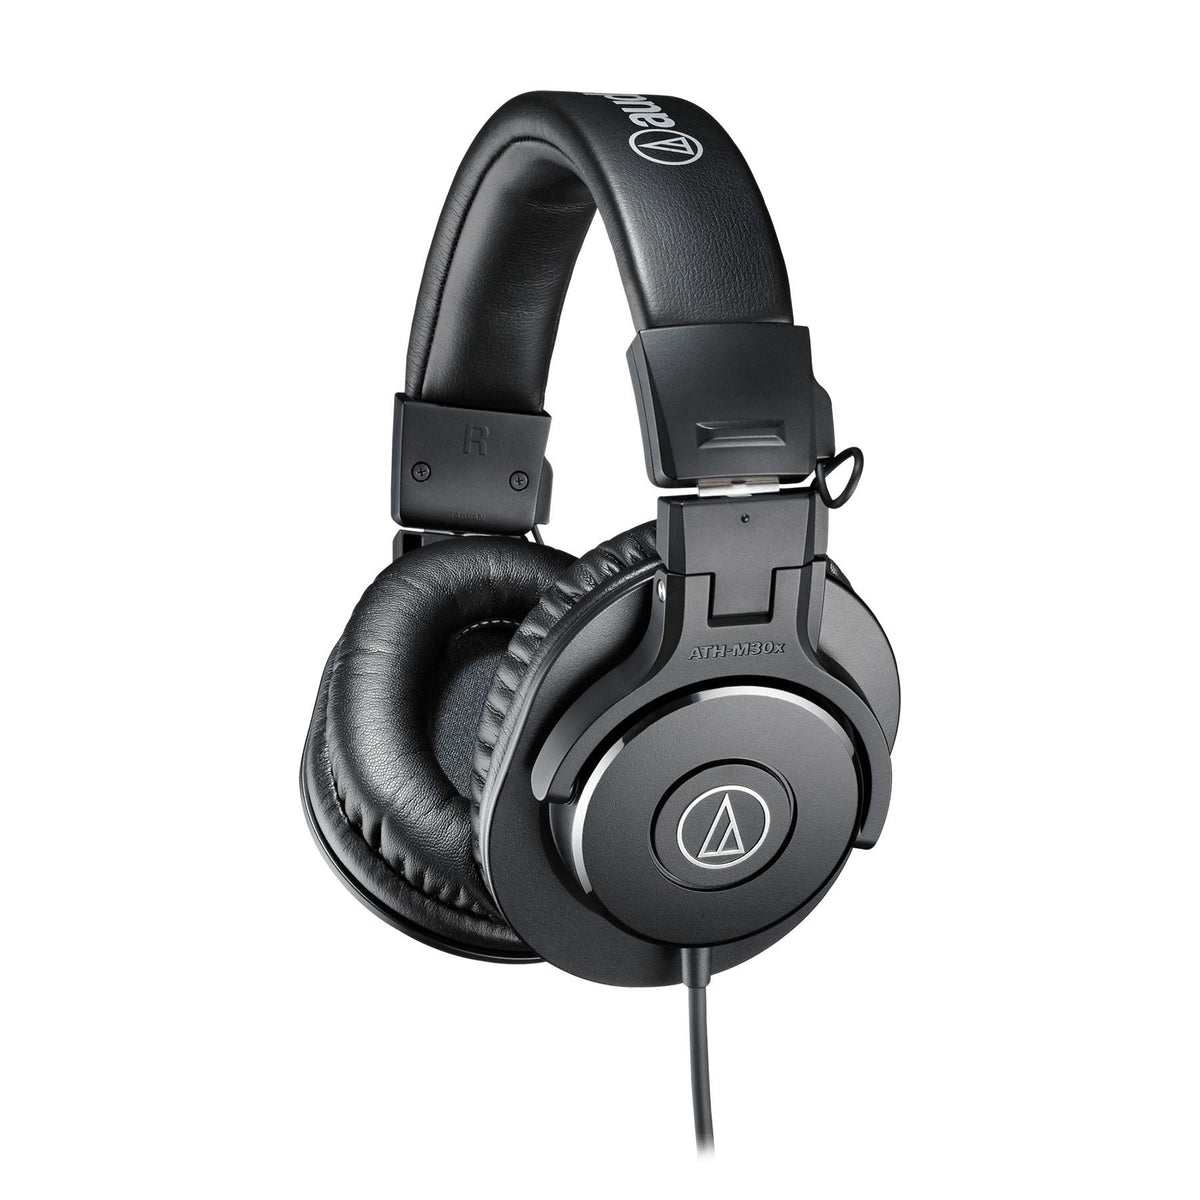 Audio-Technica ATH-M30x Studio Headphones